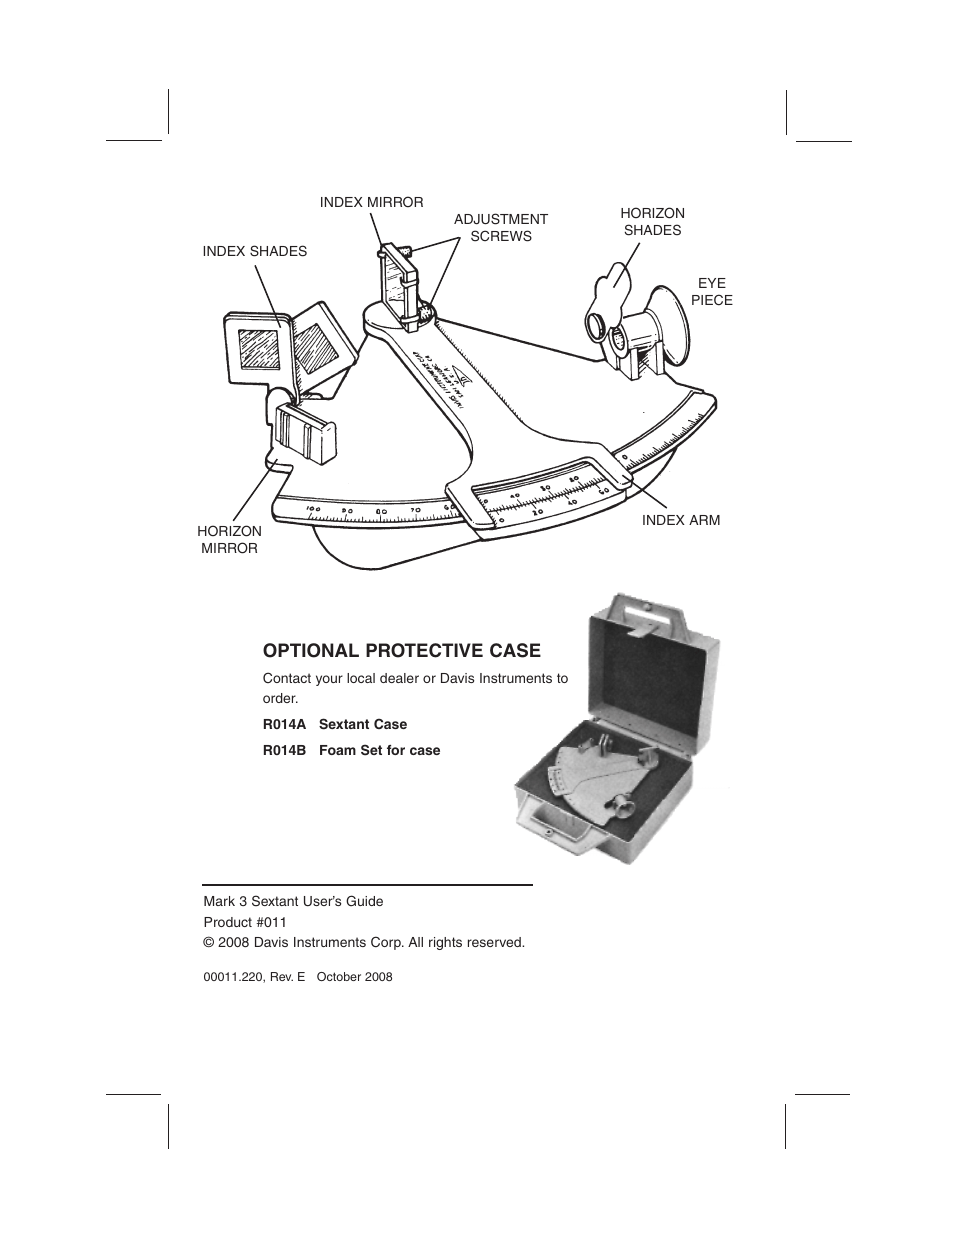 medium resolution of optional protective case davis mark 3 sextant user manual page 2 20